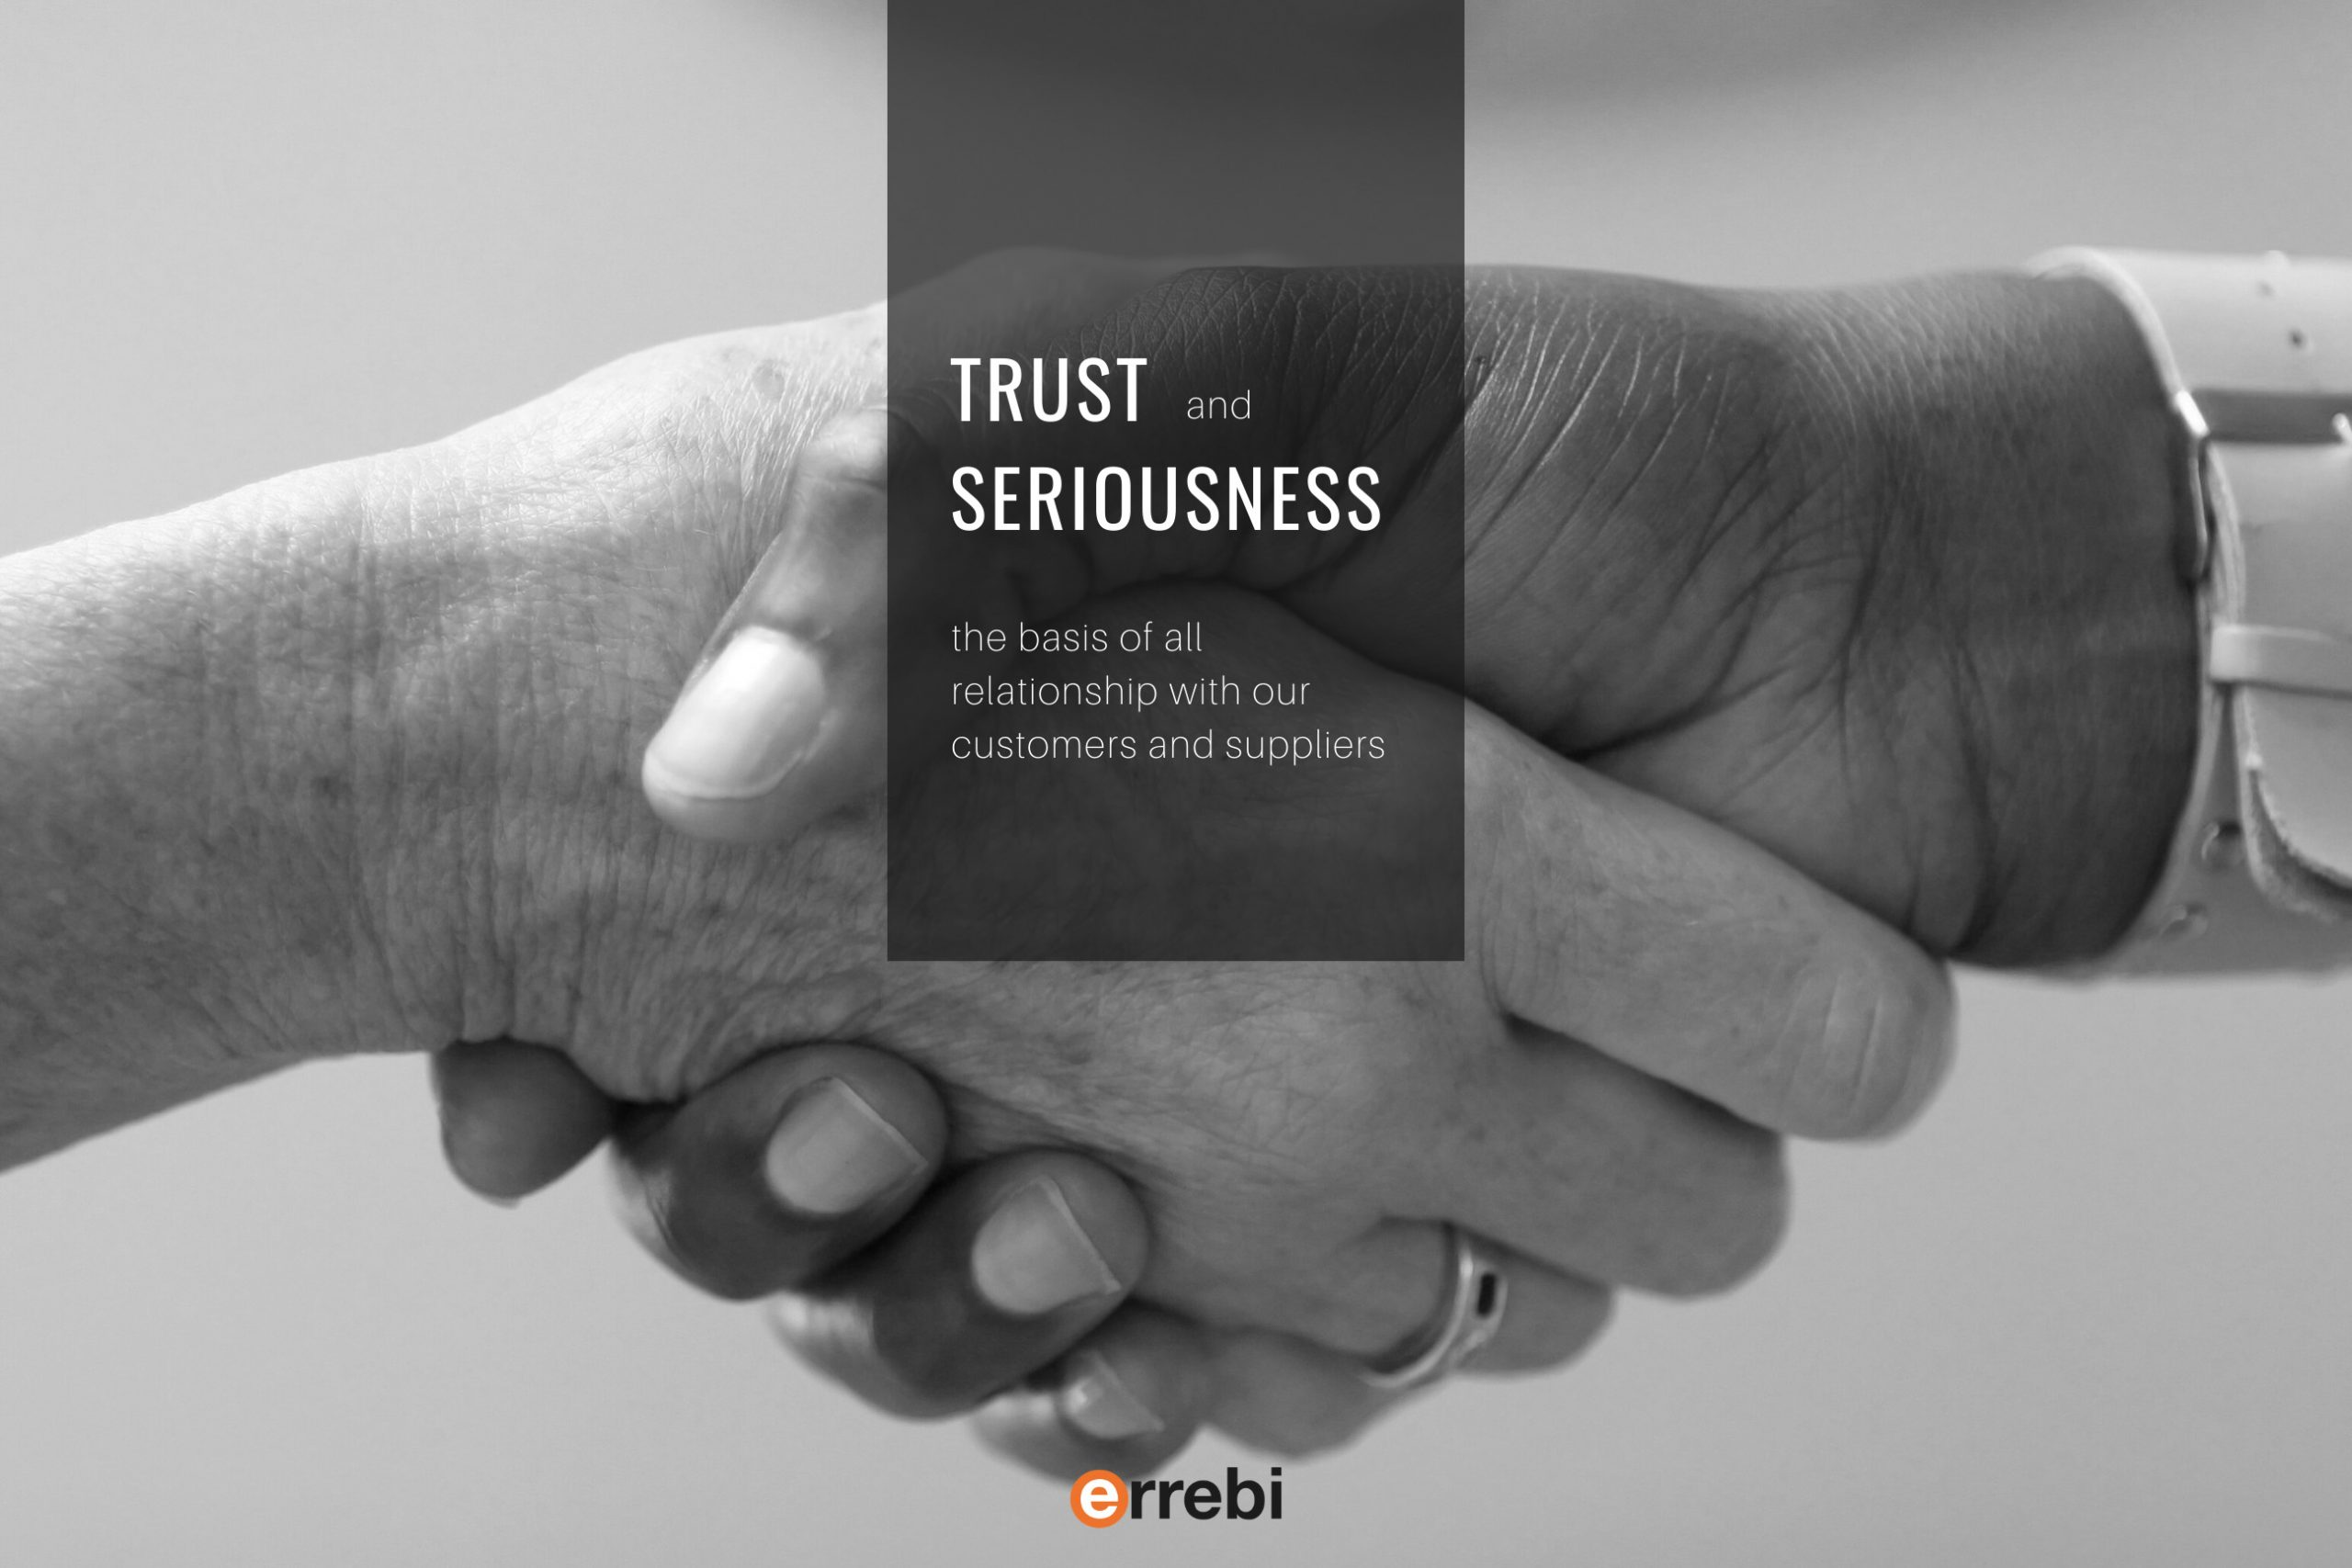 Trust and seriusness